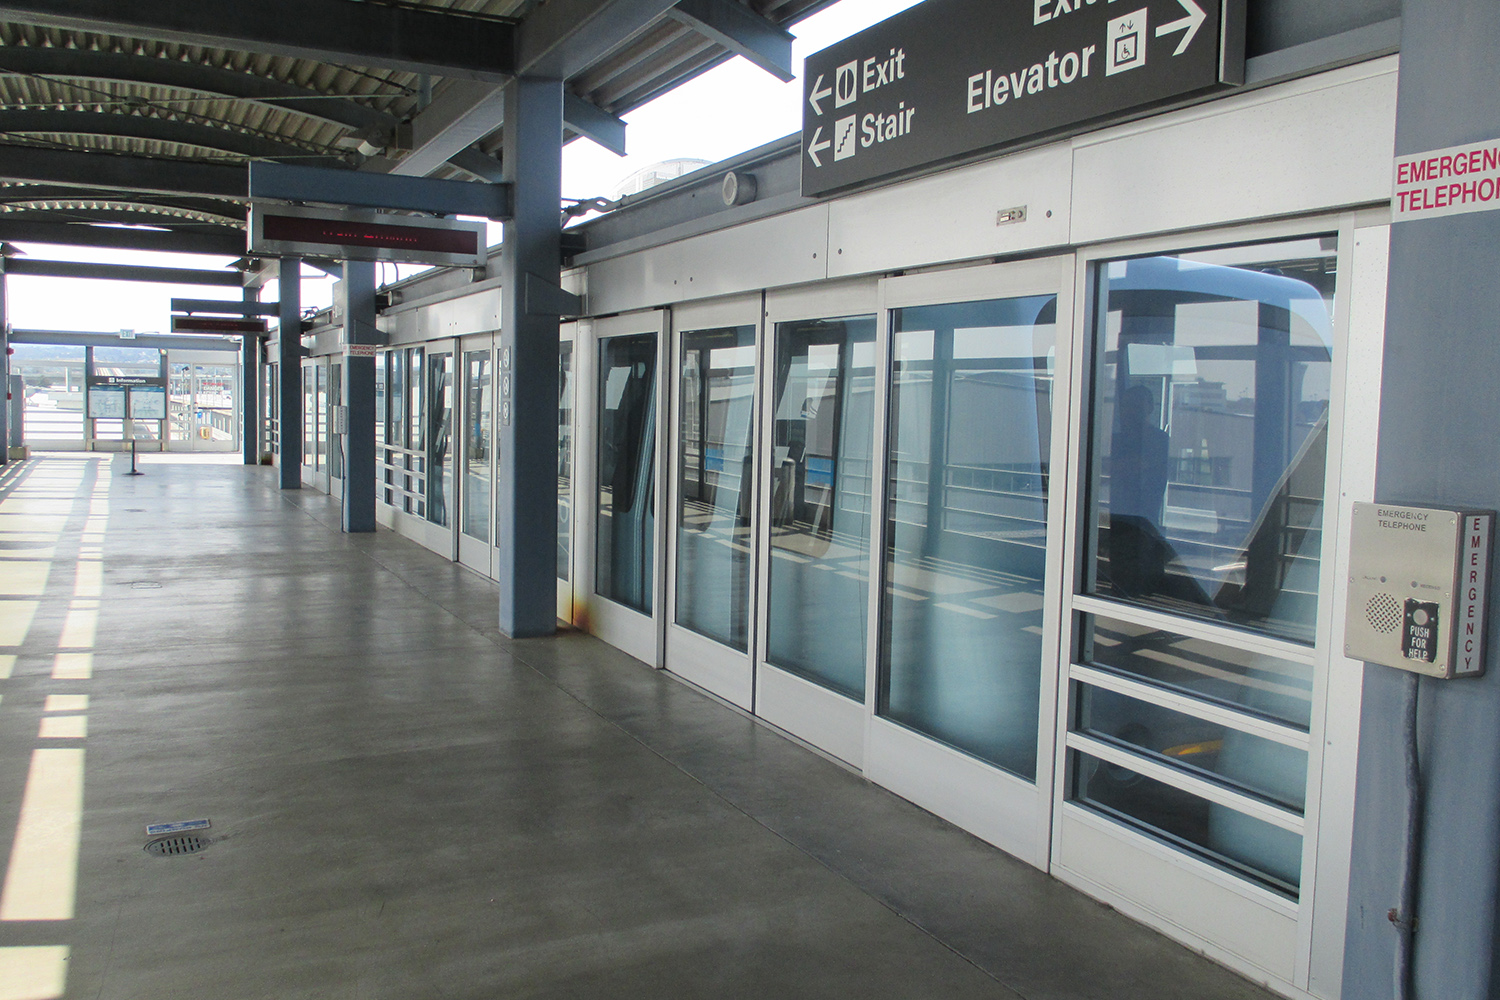 aldridge-electric-top-best-electrical-infrastructure-transit-airport-california-sfo-control-systems.jpg